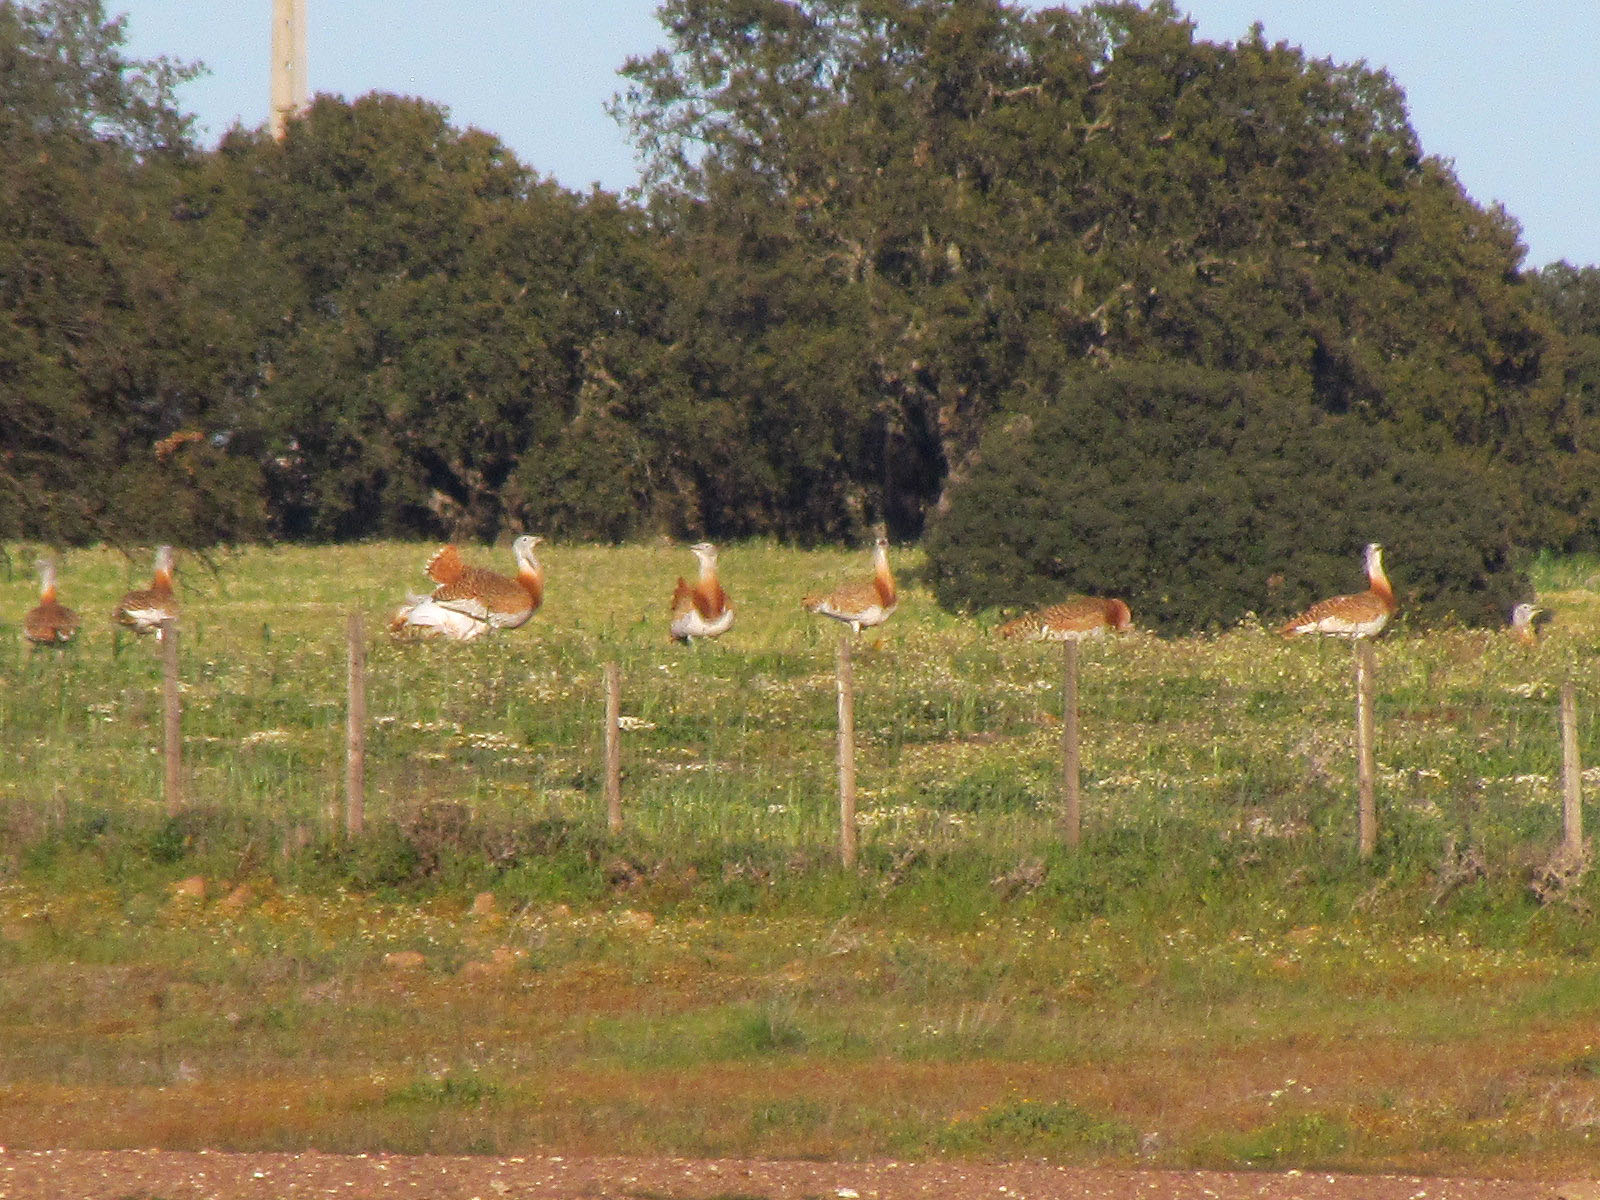 Great Bustard in a field